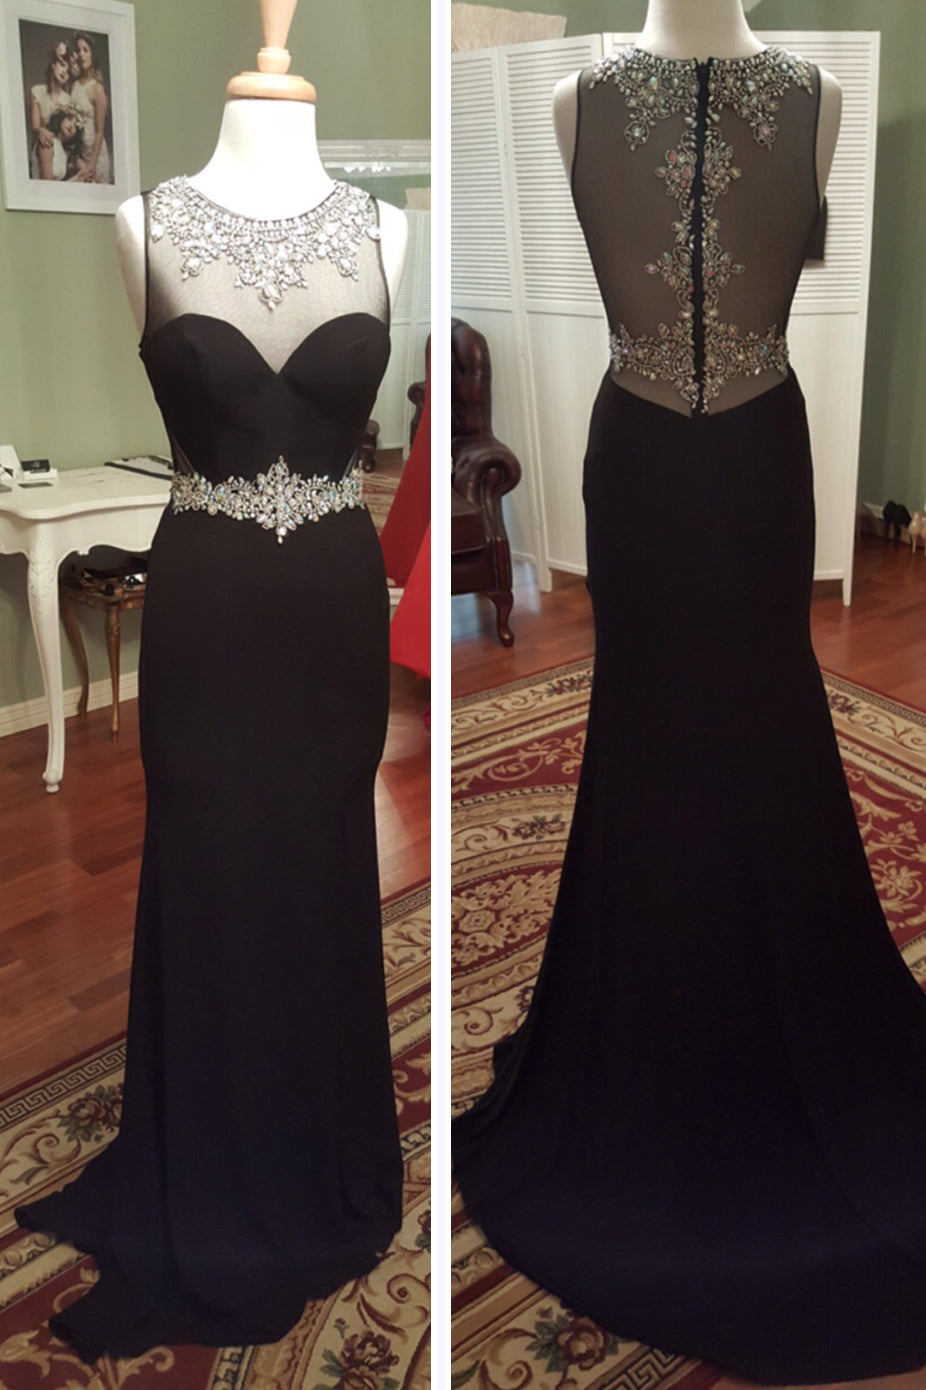 EMBELLISHED GOWN by Sherri Hill